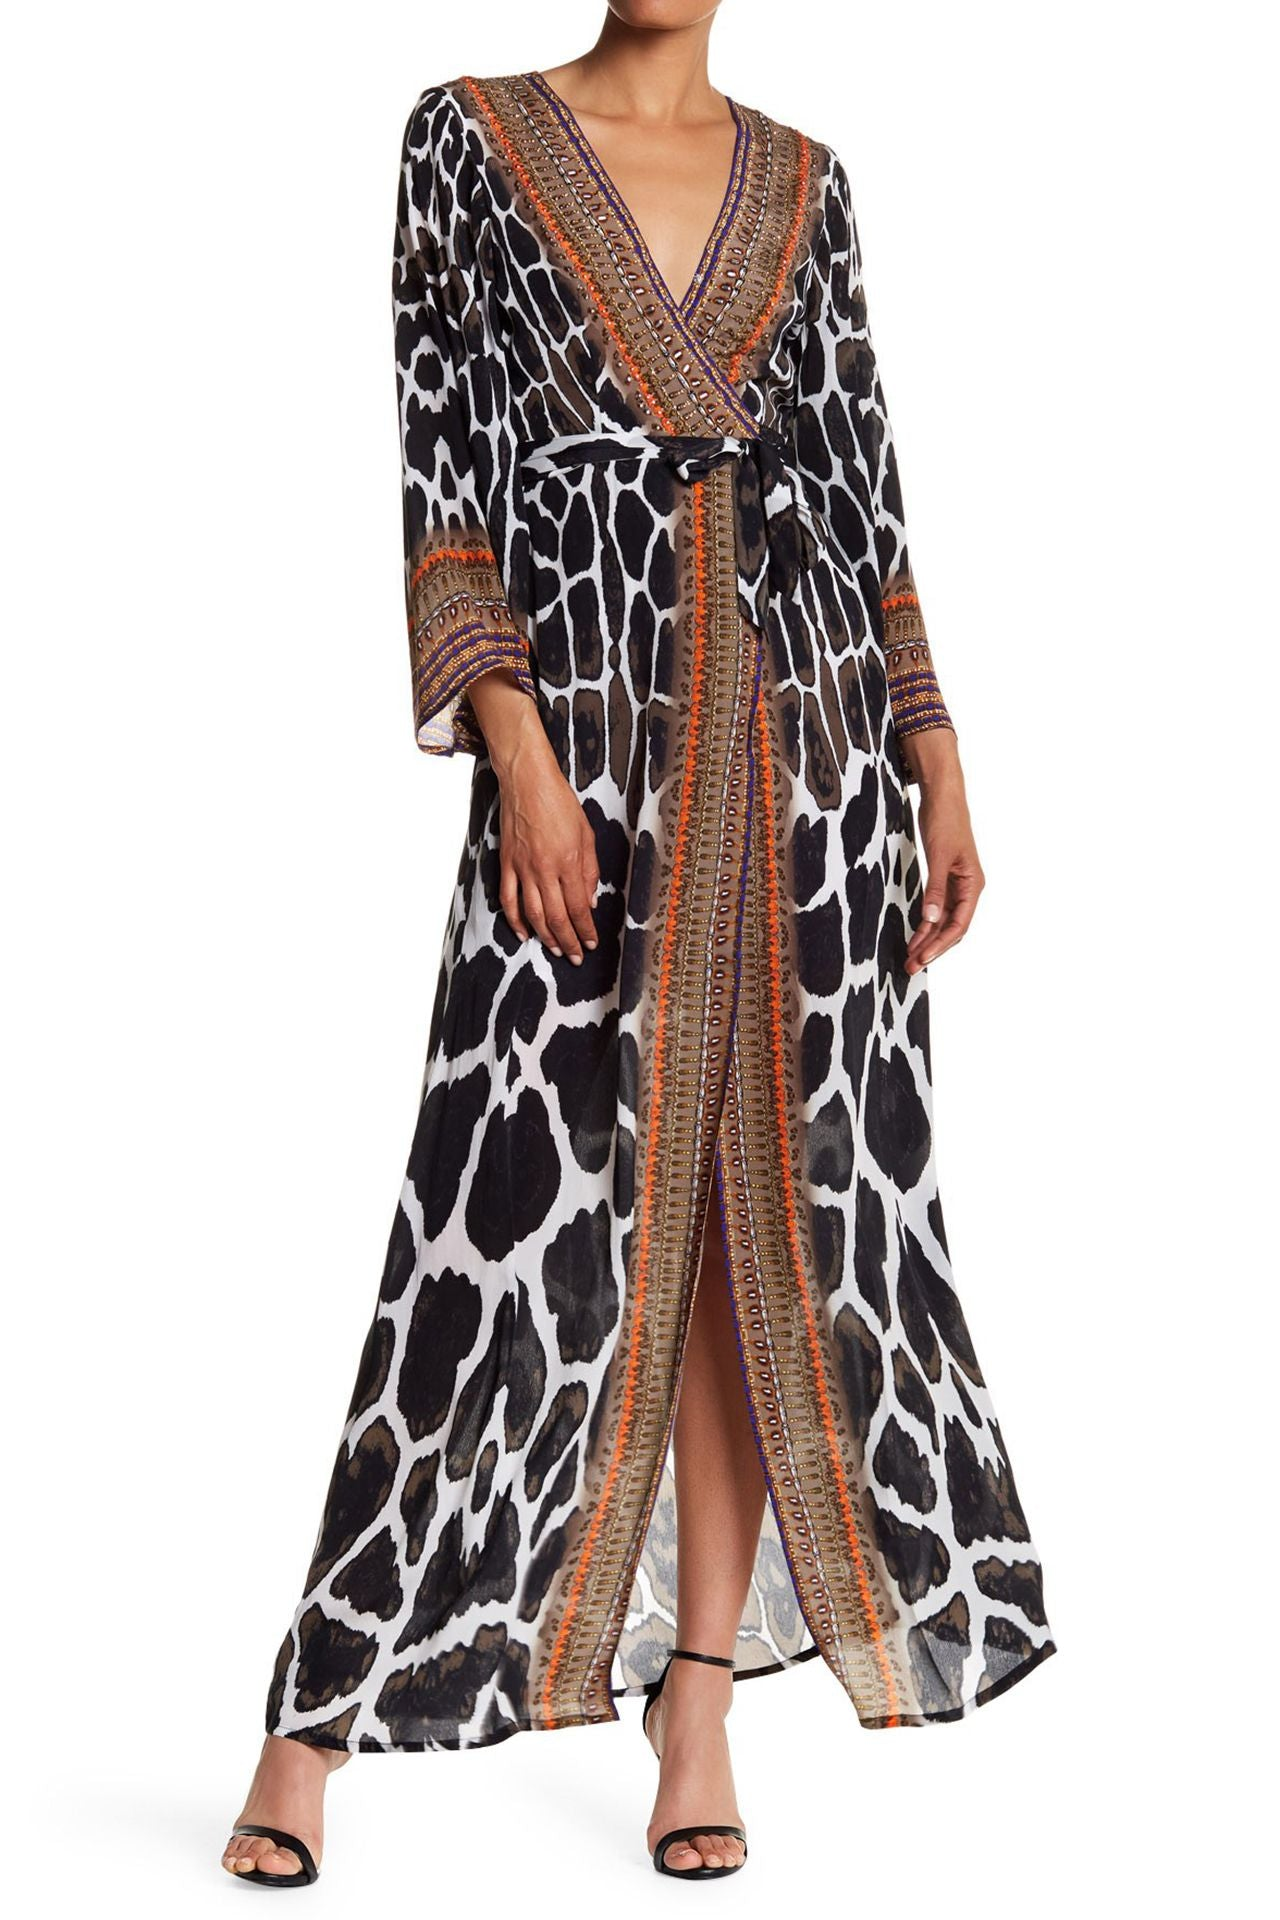 Animal Print Wrap Dress in Caviar Black